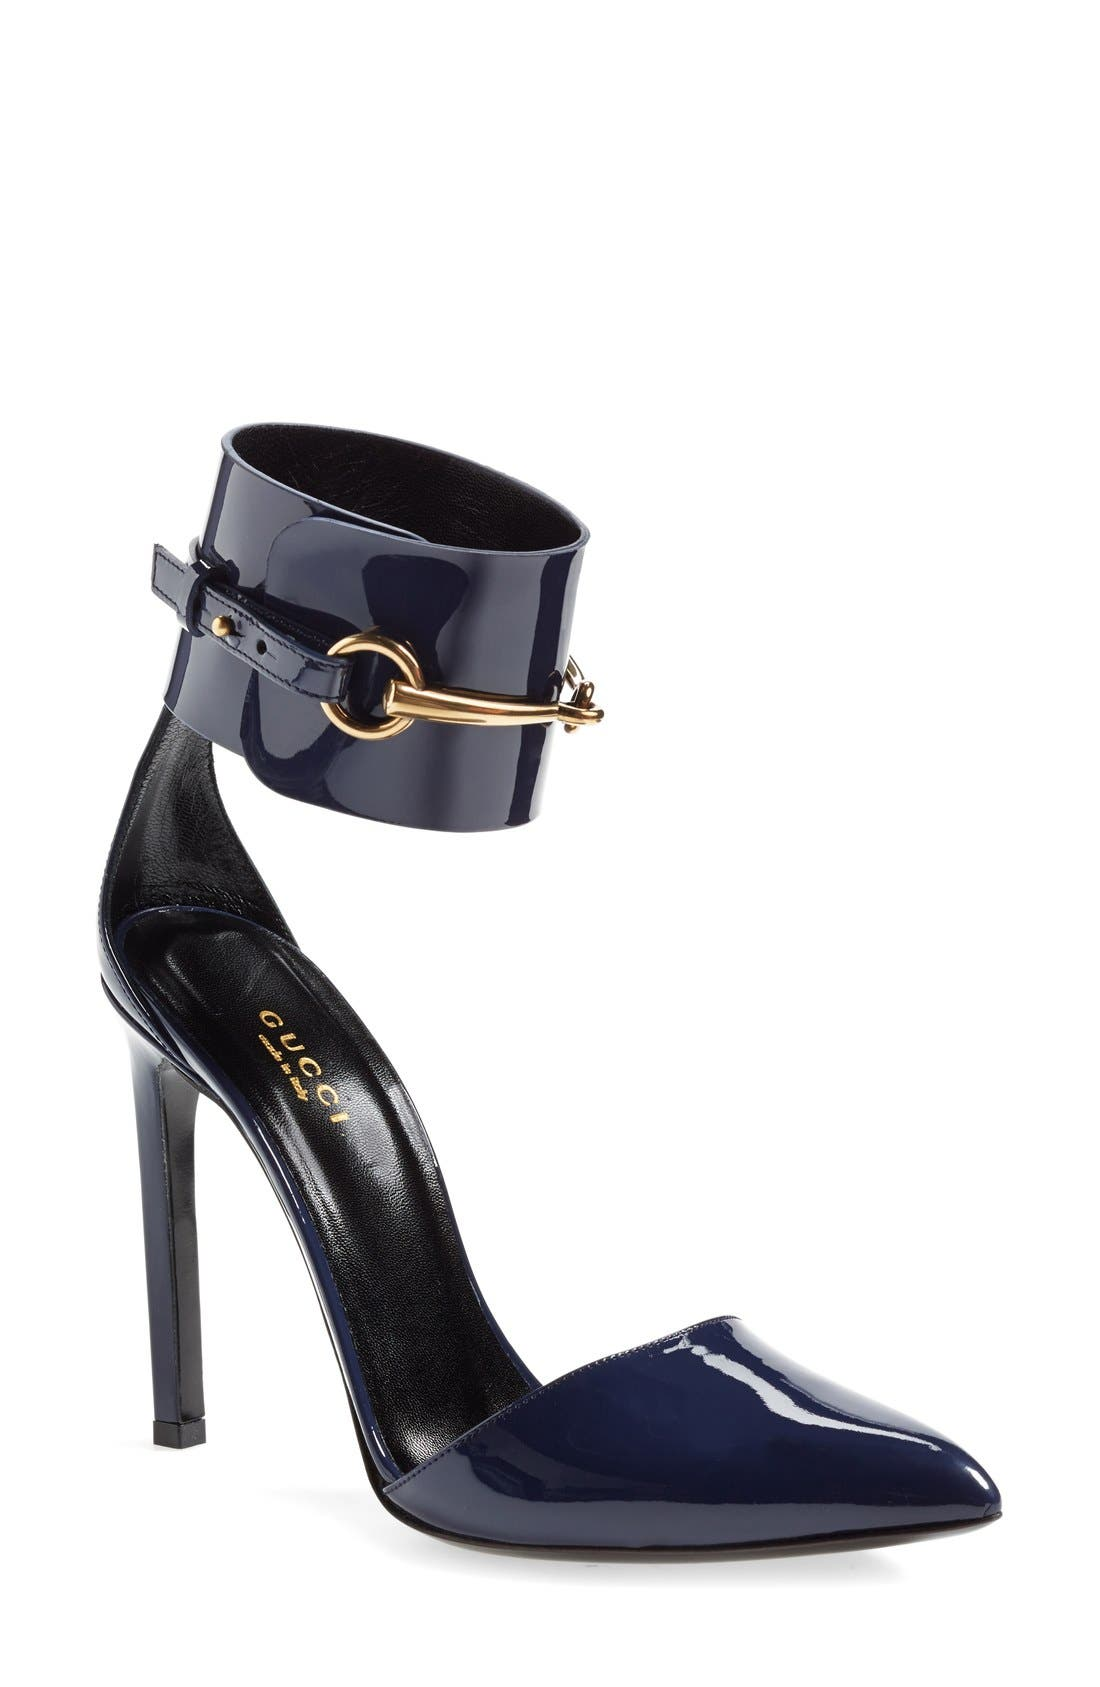 Main Image - Gucci 'Ursula' Ankle Cuff Pointy Toe Pump